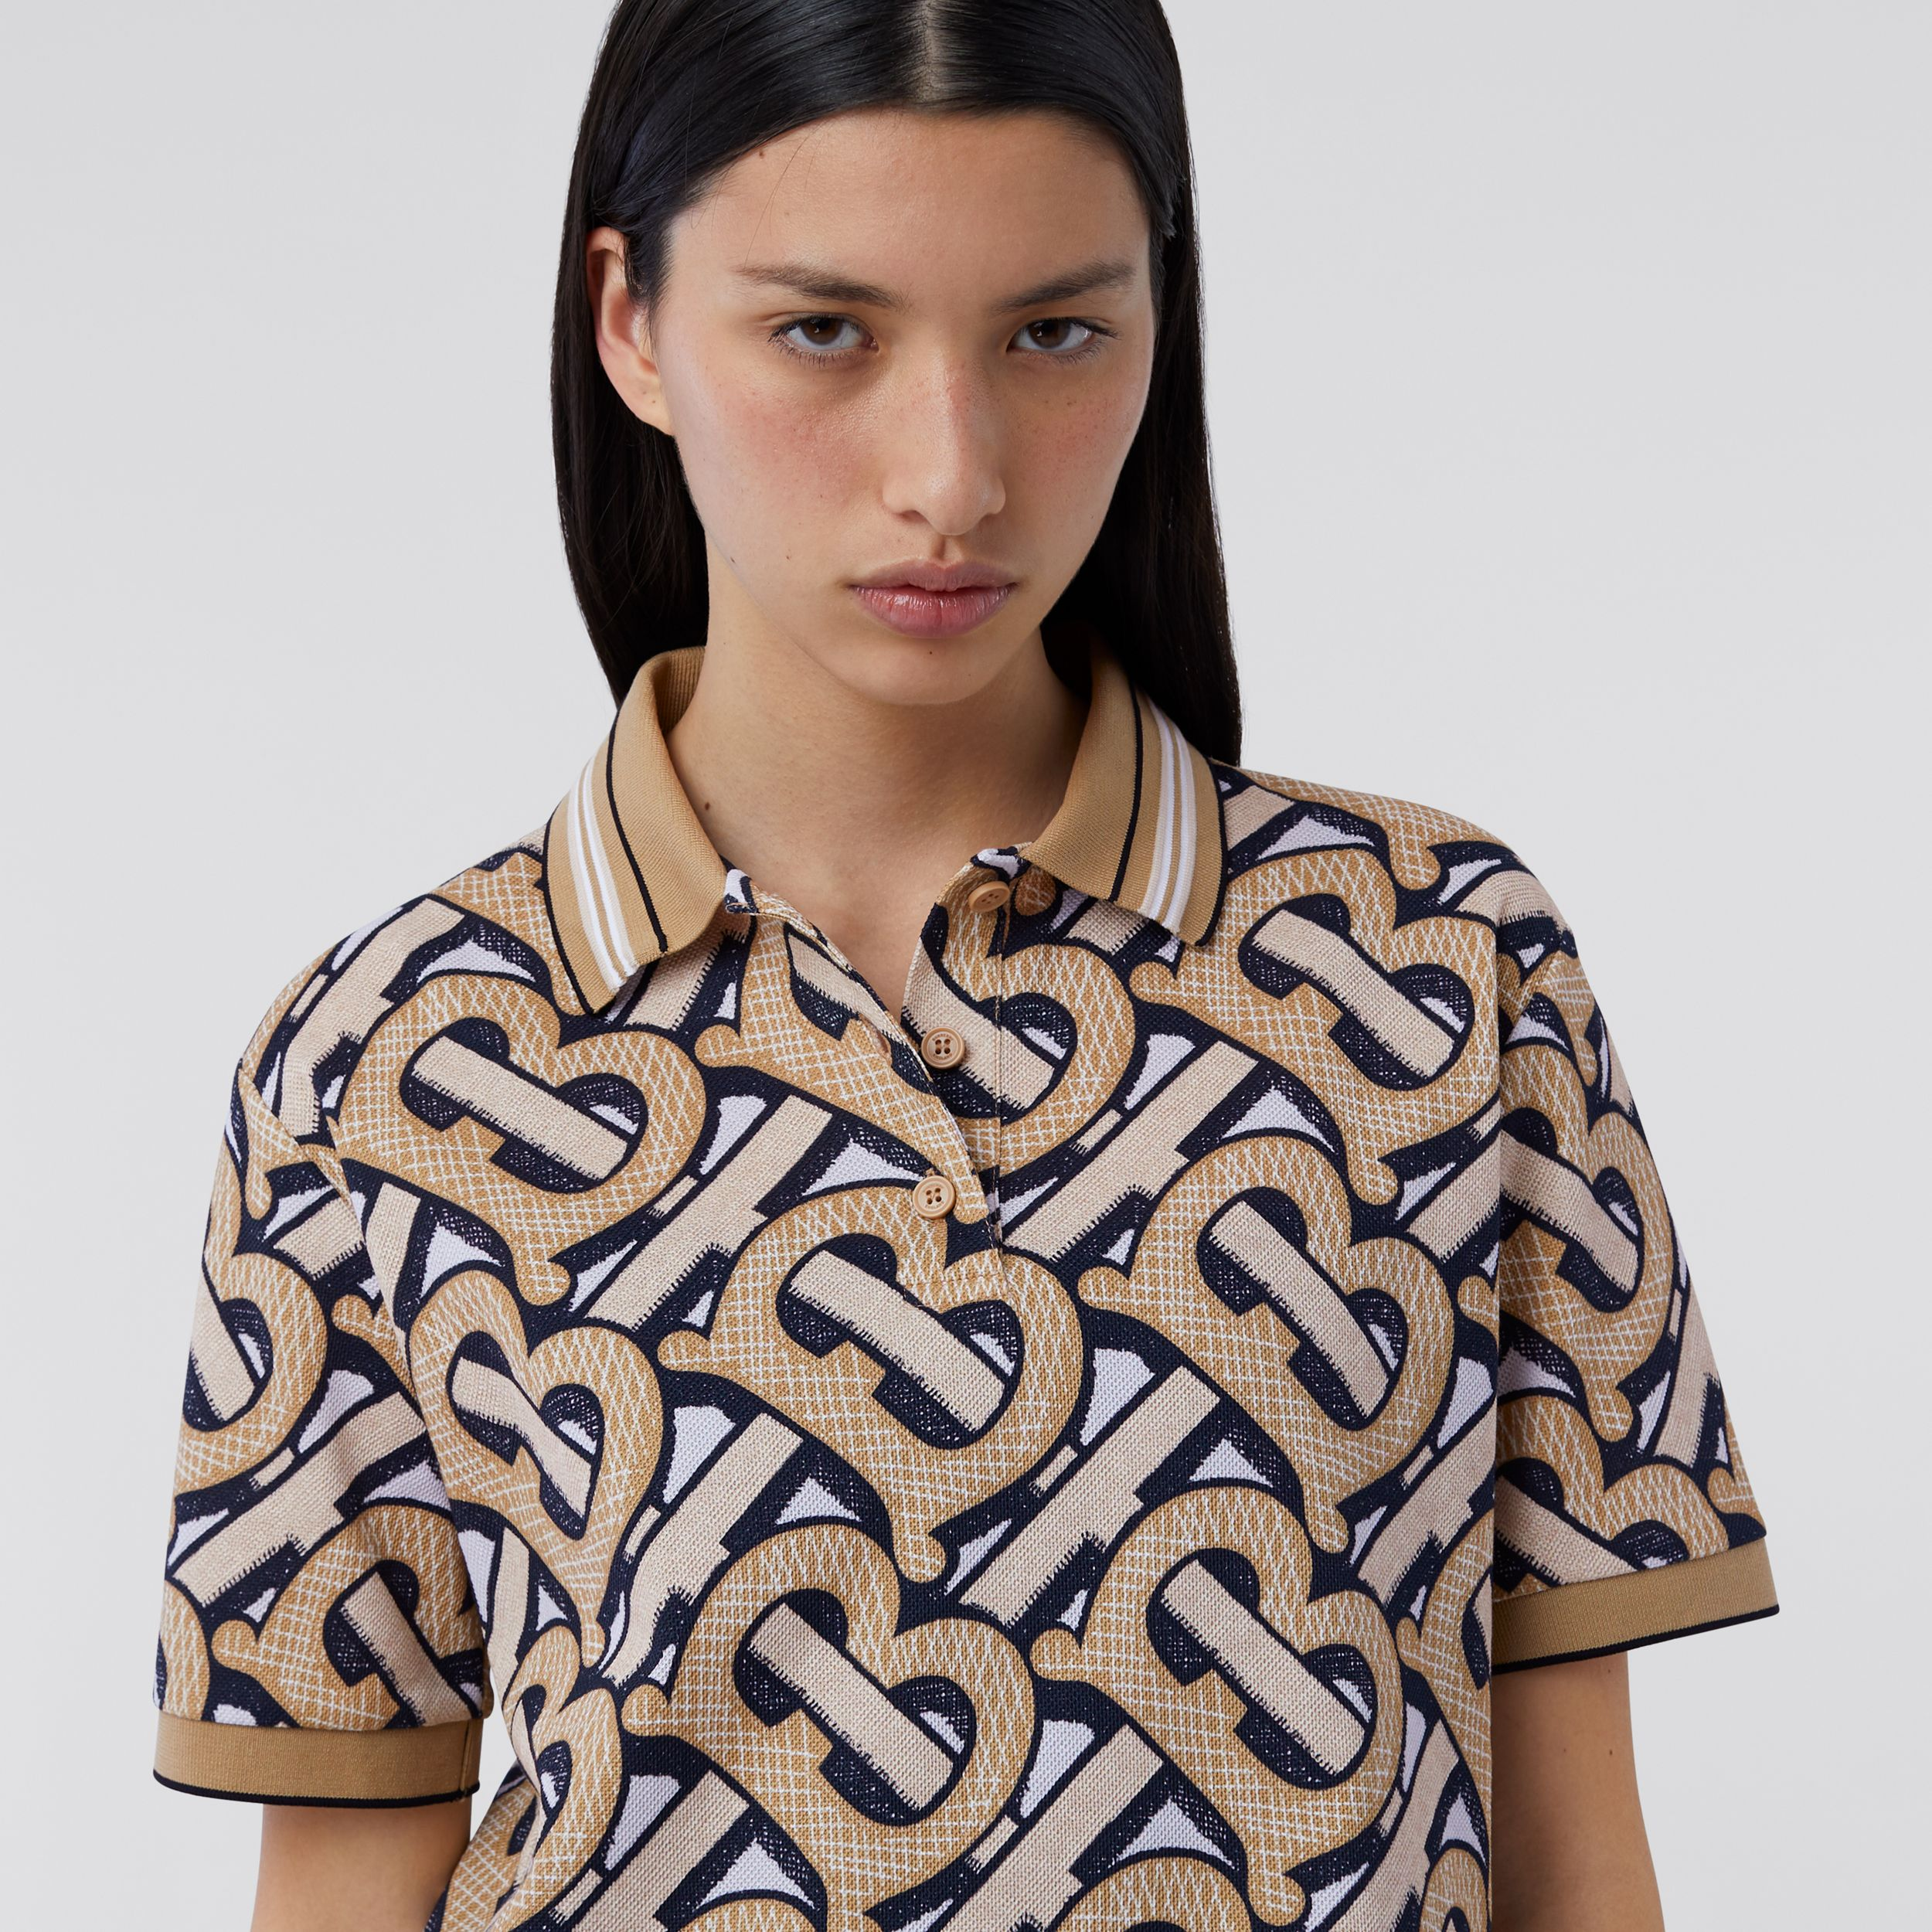 Monogram Print Cotton Piqué Polo Shirt – Unisex in Dark Beige | Burberry United States - 2